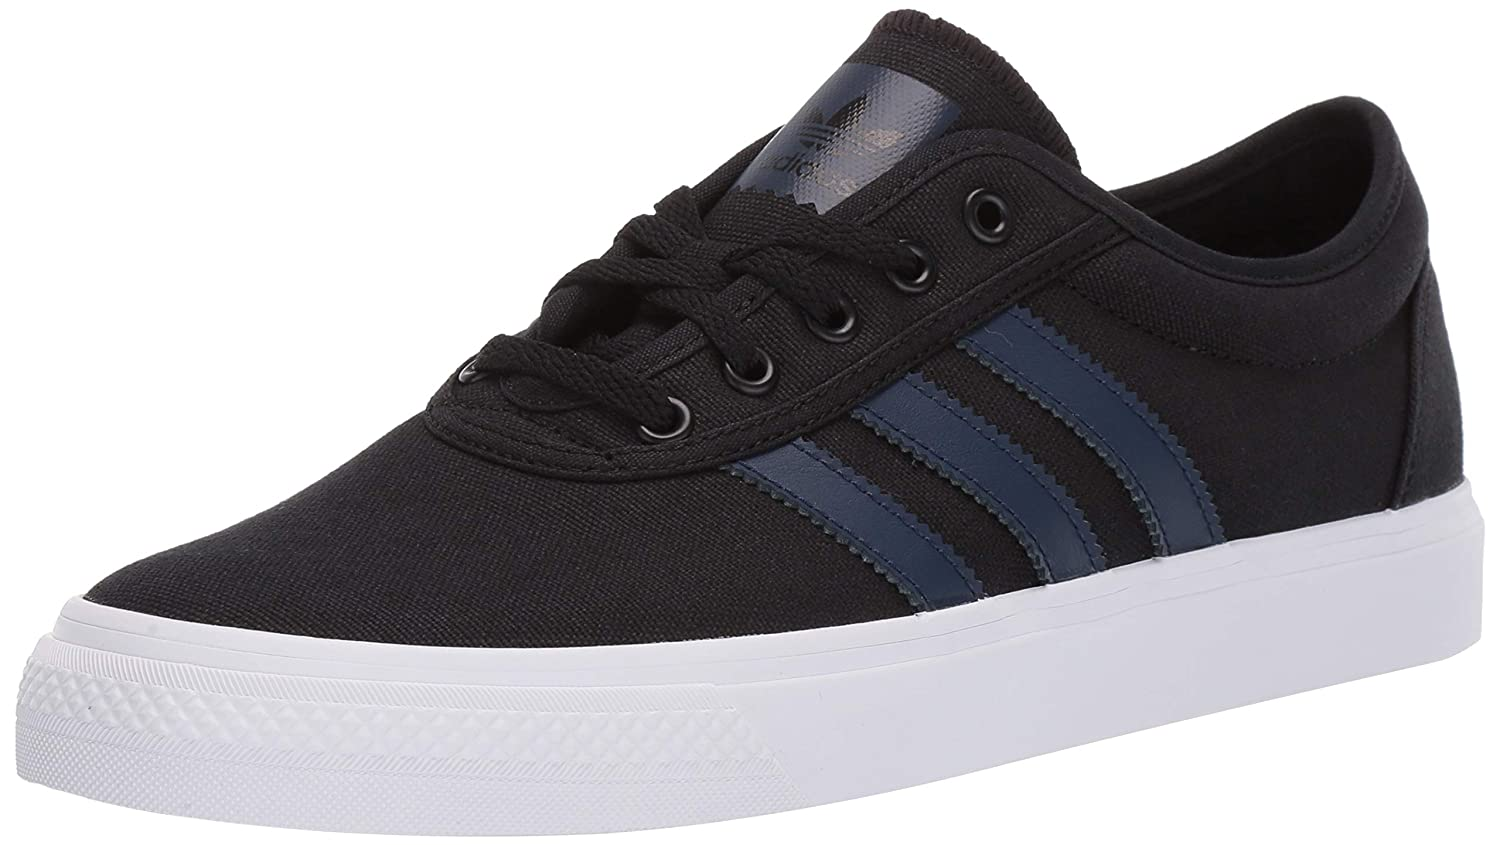 newest 32b77 dbd27 Amazon.com  adidas Mens Adi-Ease Lace Up Sneaker  Fashion Sn